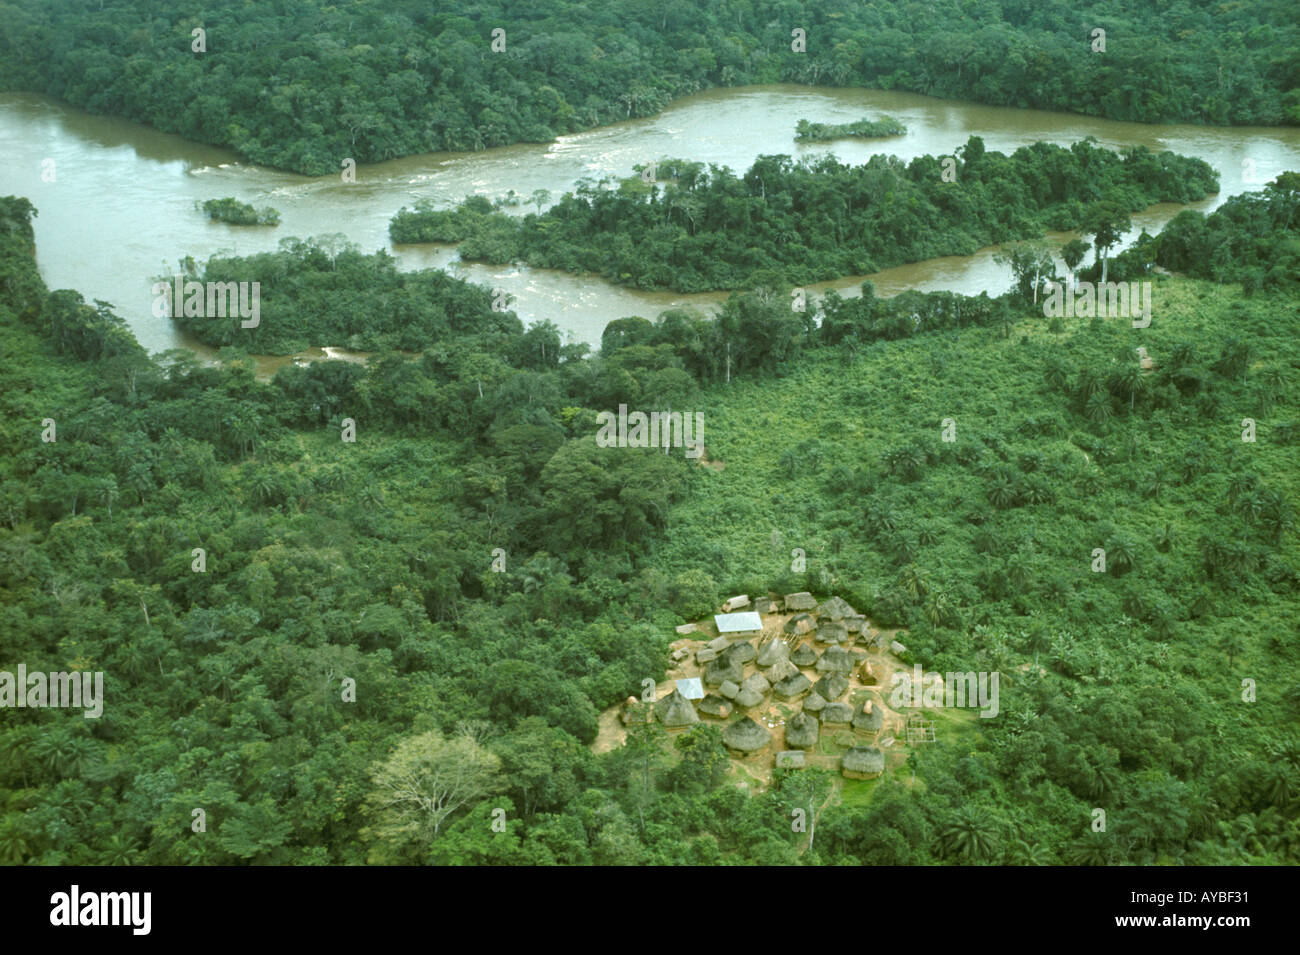 Africa Liberia Kpelle Tribe aerial view of small village and 'Saint Paul River' in rainforest - Stock Image